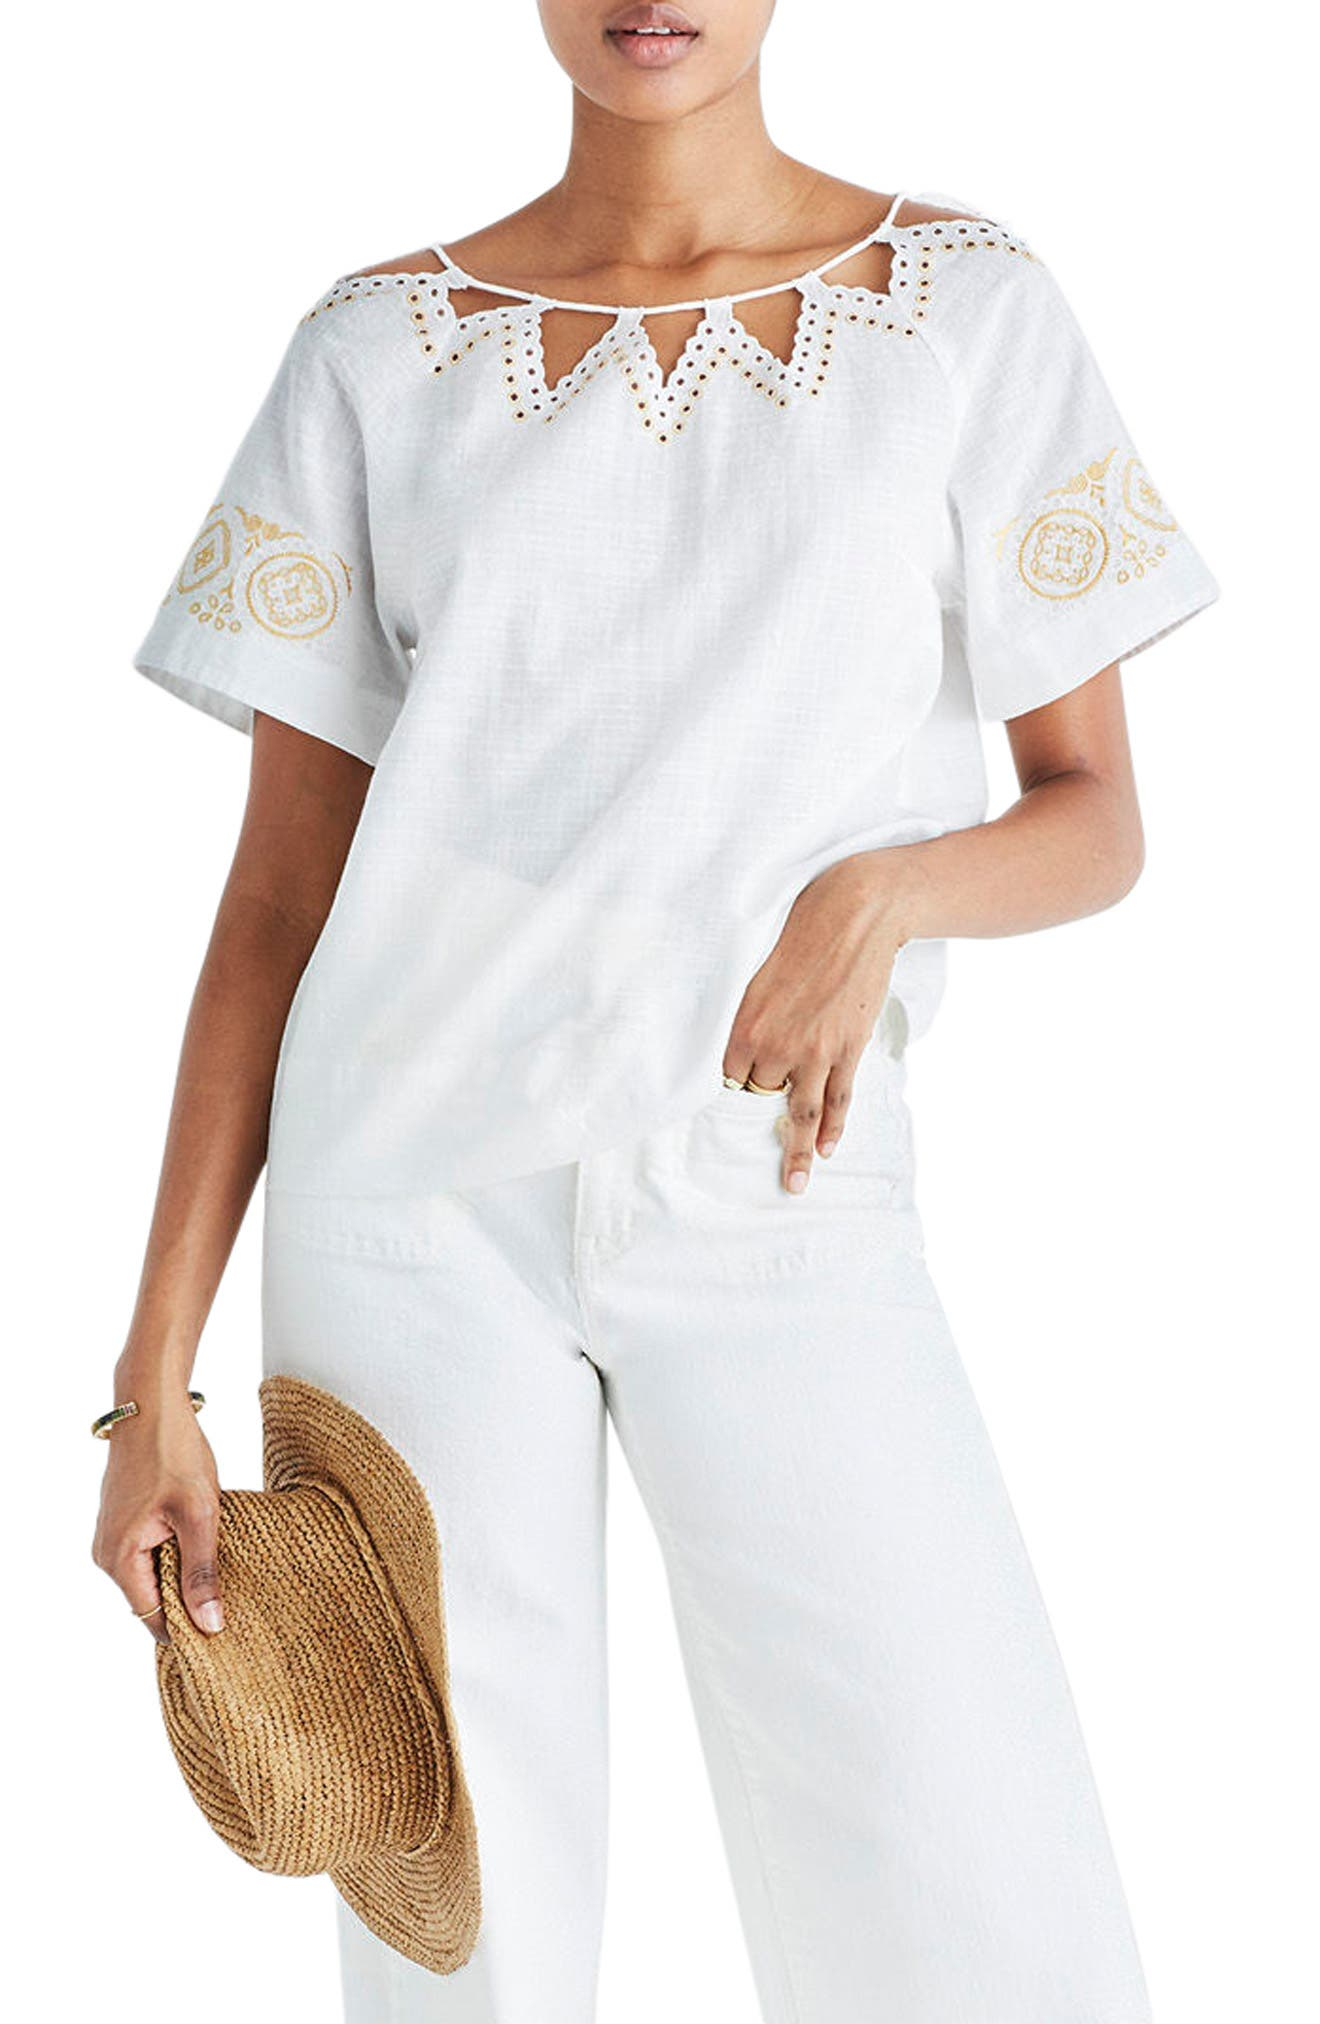 Alternate Image 1 Selected - Madewell Eyelet Peekaboo Top